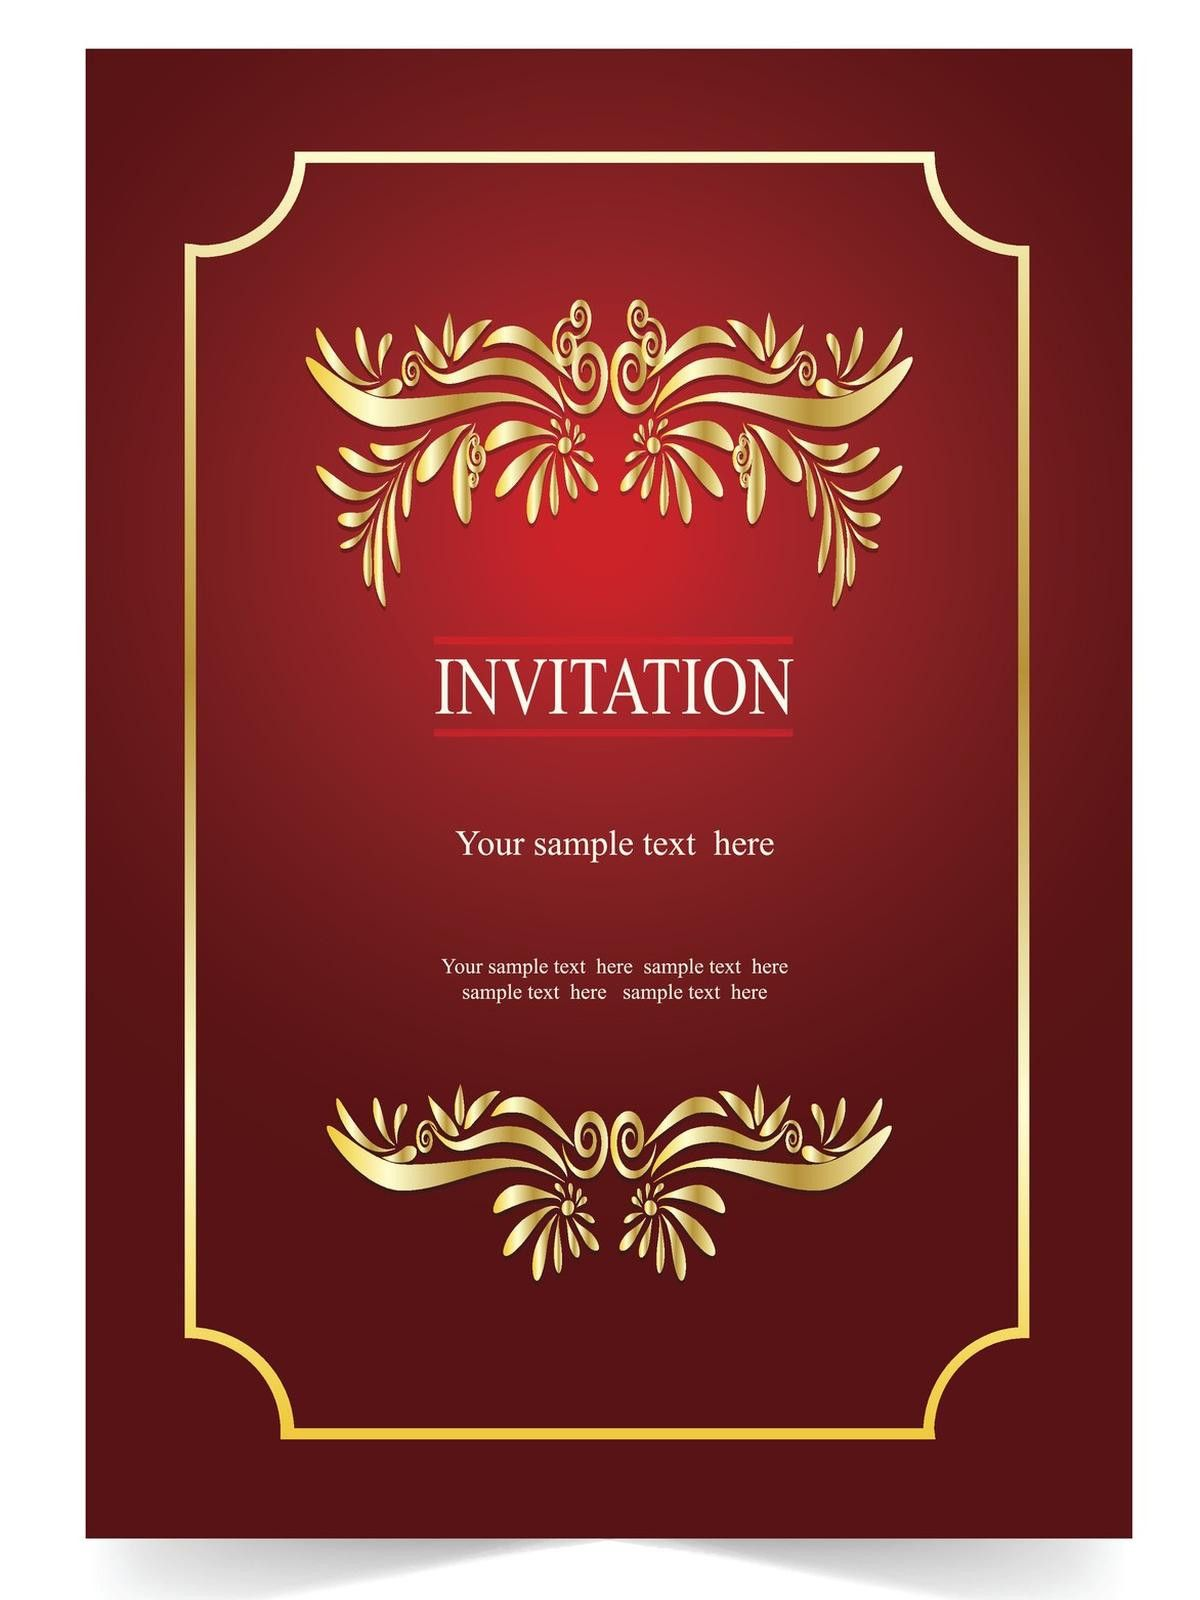 Get Together Invitation Wording Samples 10 Farewell Party Invitation Wordings To Bid Goodbye In Bday Party Invitations Invitations Invitation Card Party